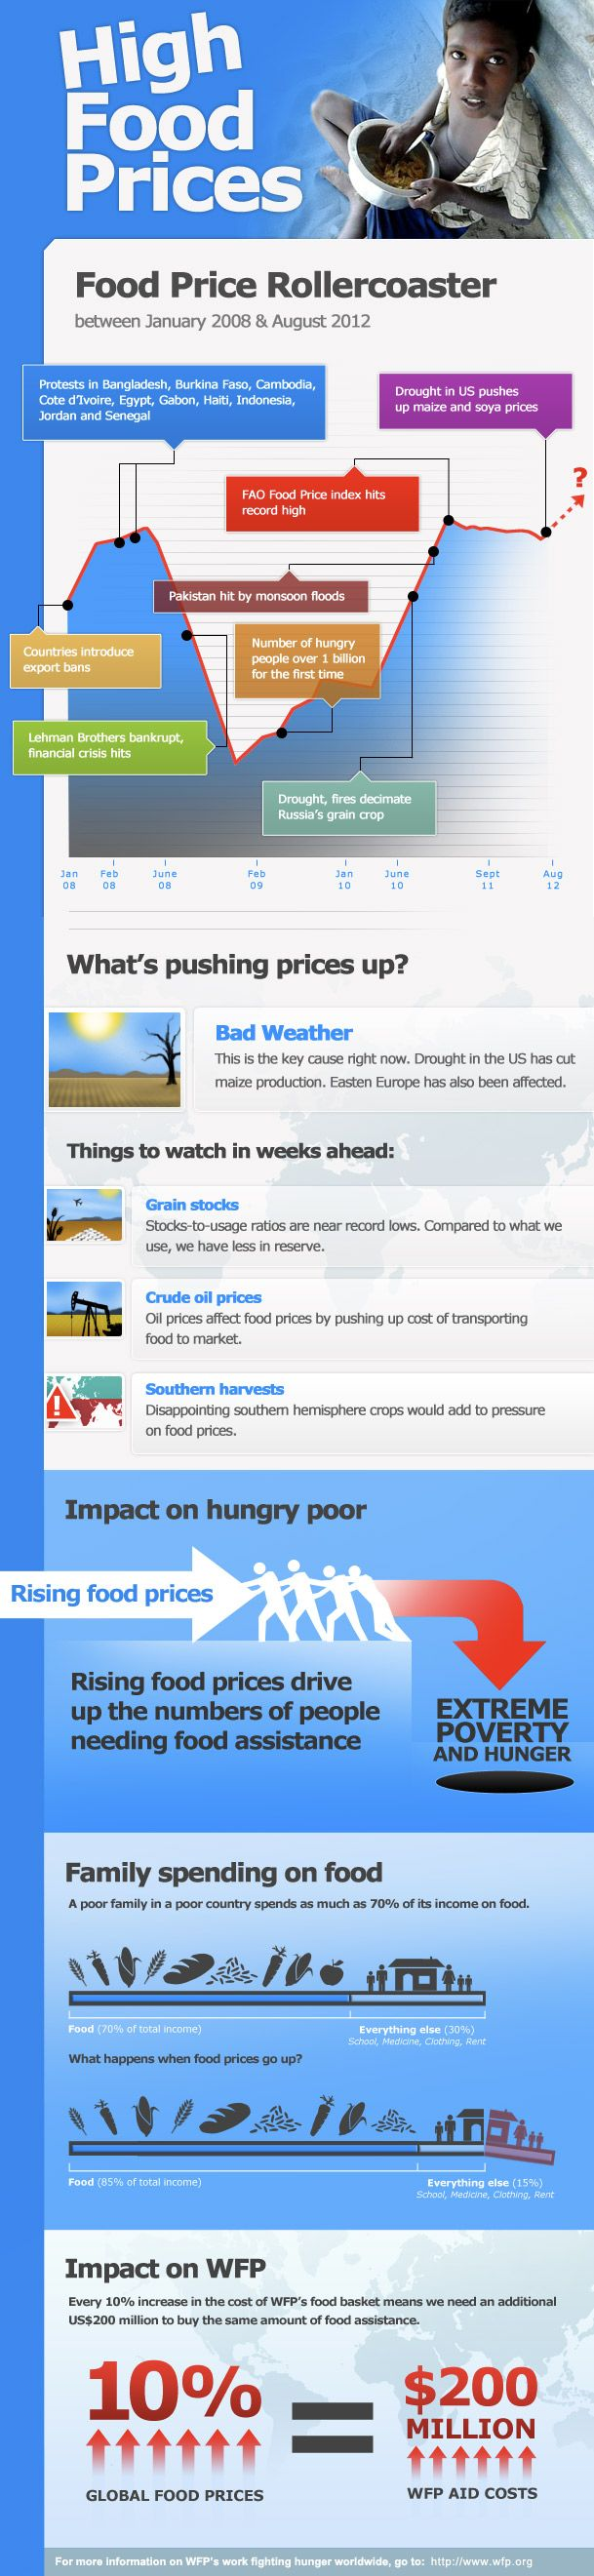 Want to understand how high food prices really are? And how they're affecting the world's poor? Take a look at this infographic and see how how hikes in food prices mean the poorest families must make painful choices about health and schooling for their children. High Food Prices infographic via @WFP | United Nations World Food Programme - Fighting Hunger Worldwide